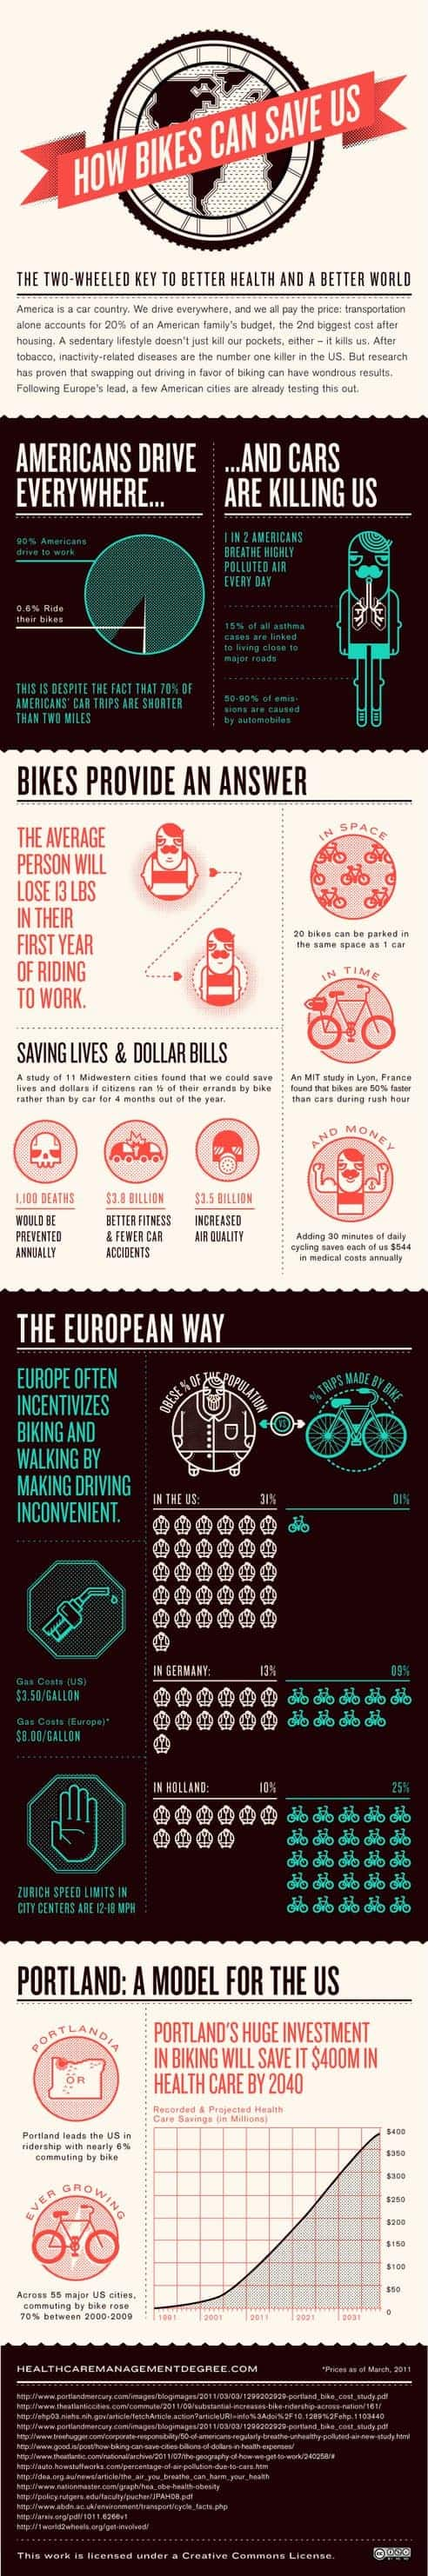 biking-and-health